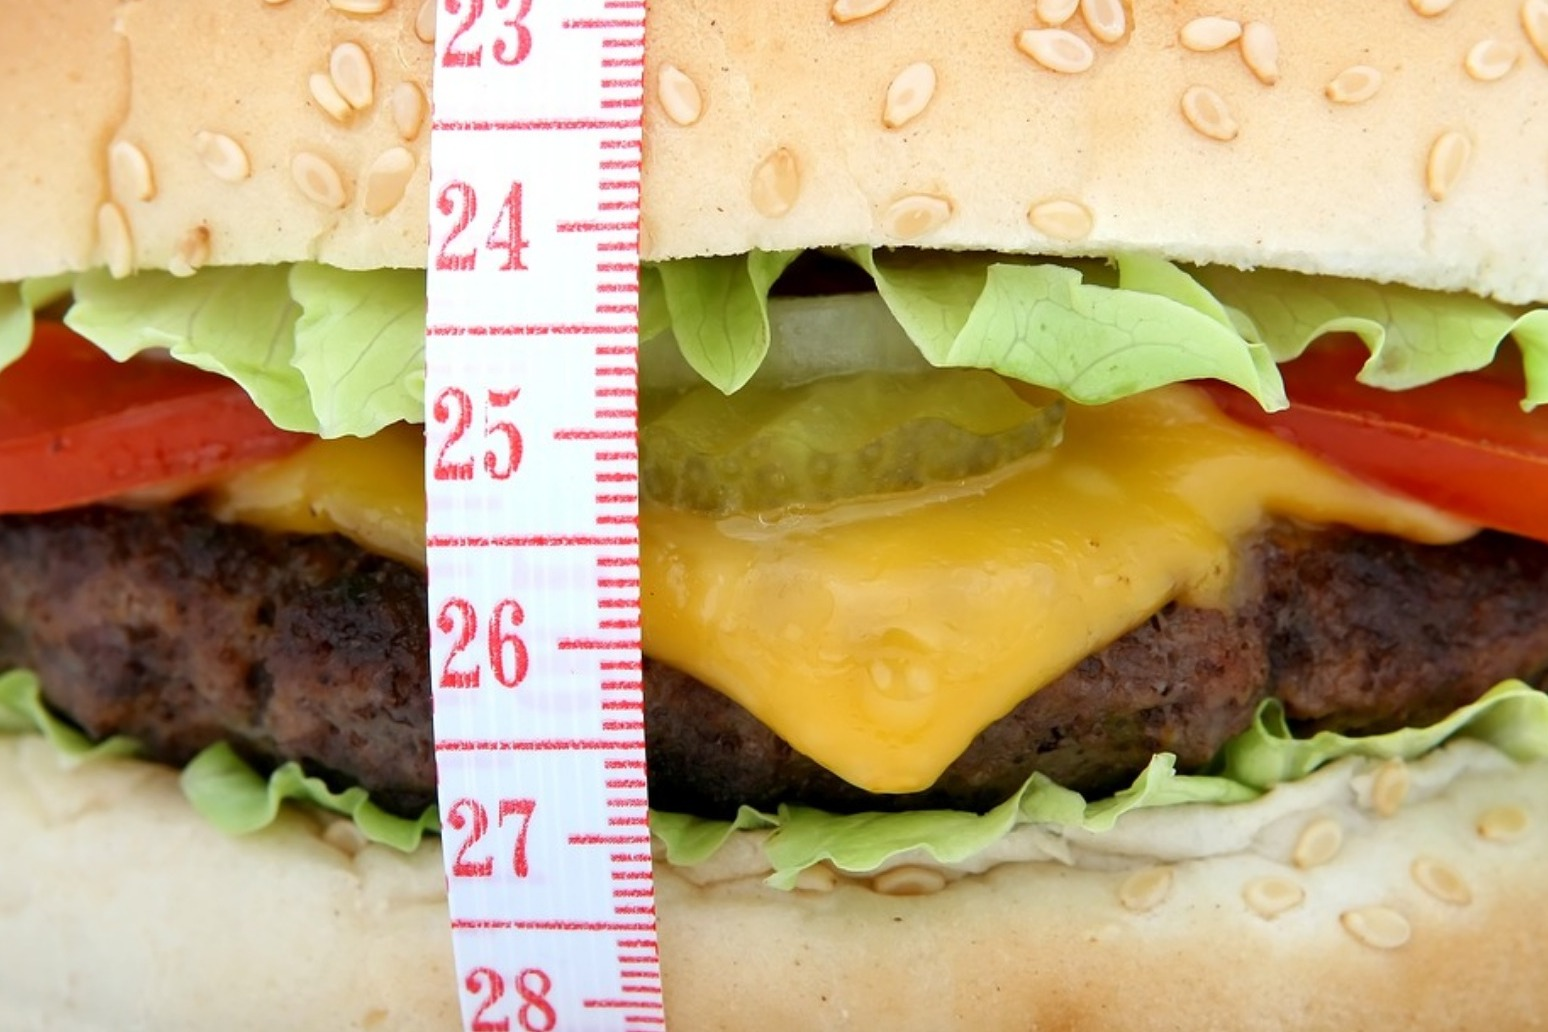 Lifestyle changes could prevent 4 in 10 cancer cases